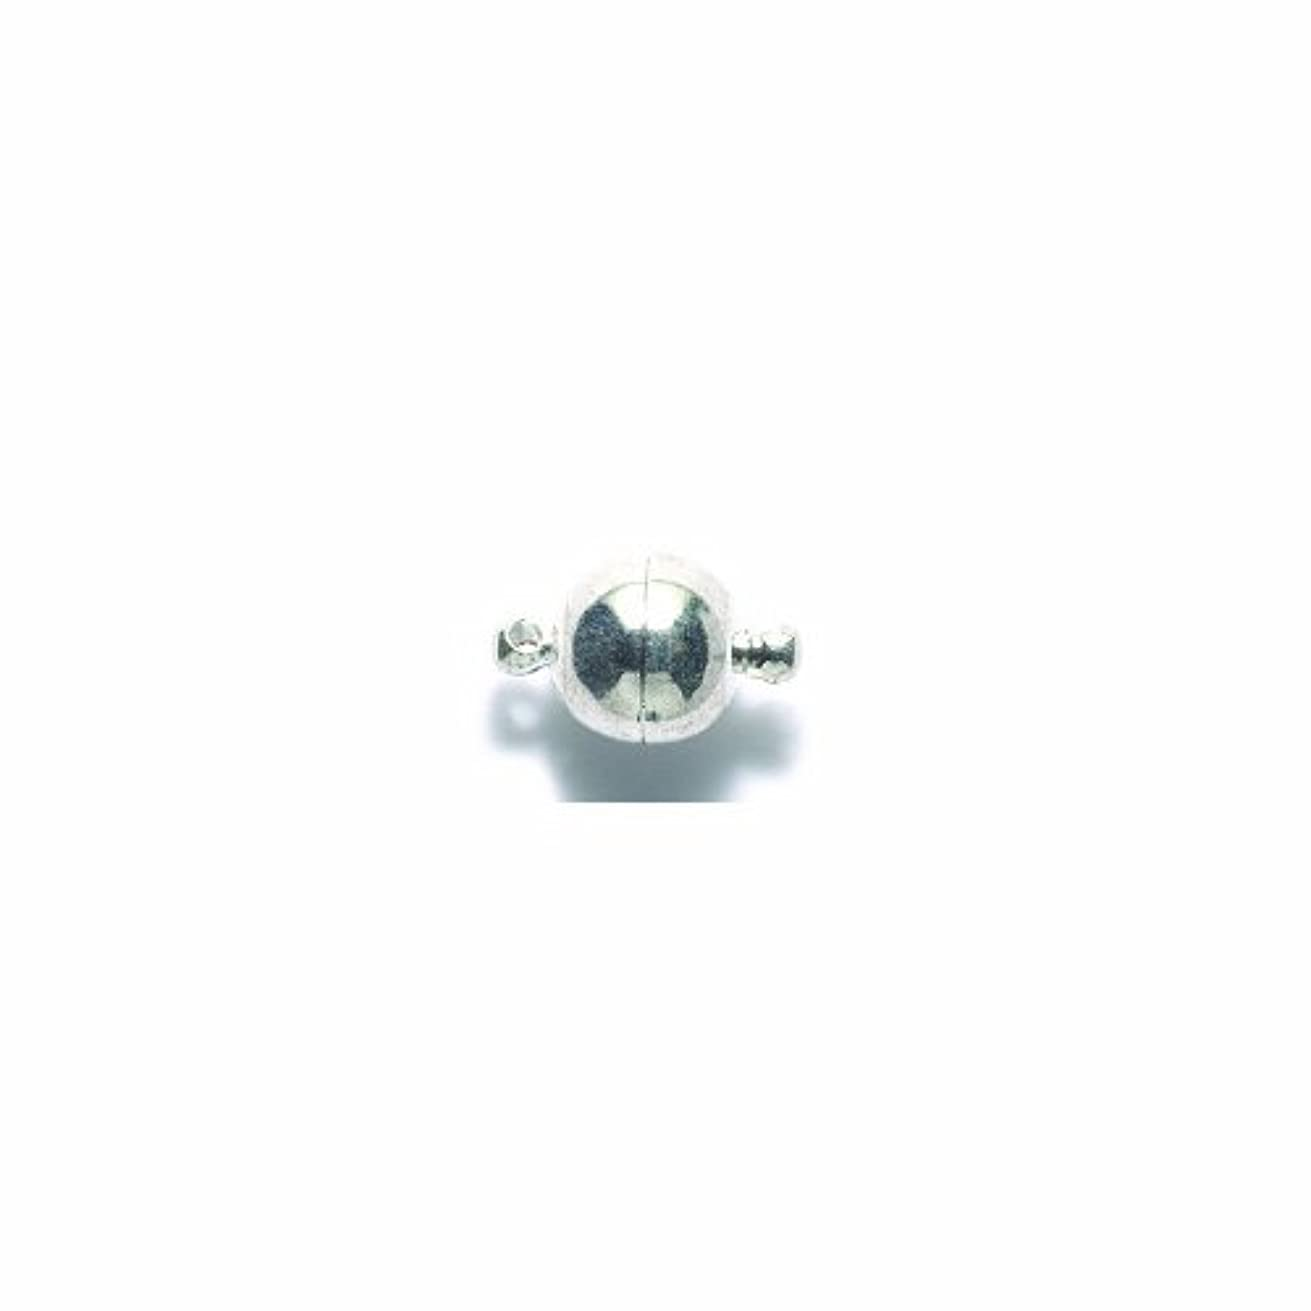 Shipwreck Beads Electroplated Metal Ball Magnetic Clasp, 10 mm, Silver, 4-Pack